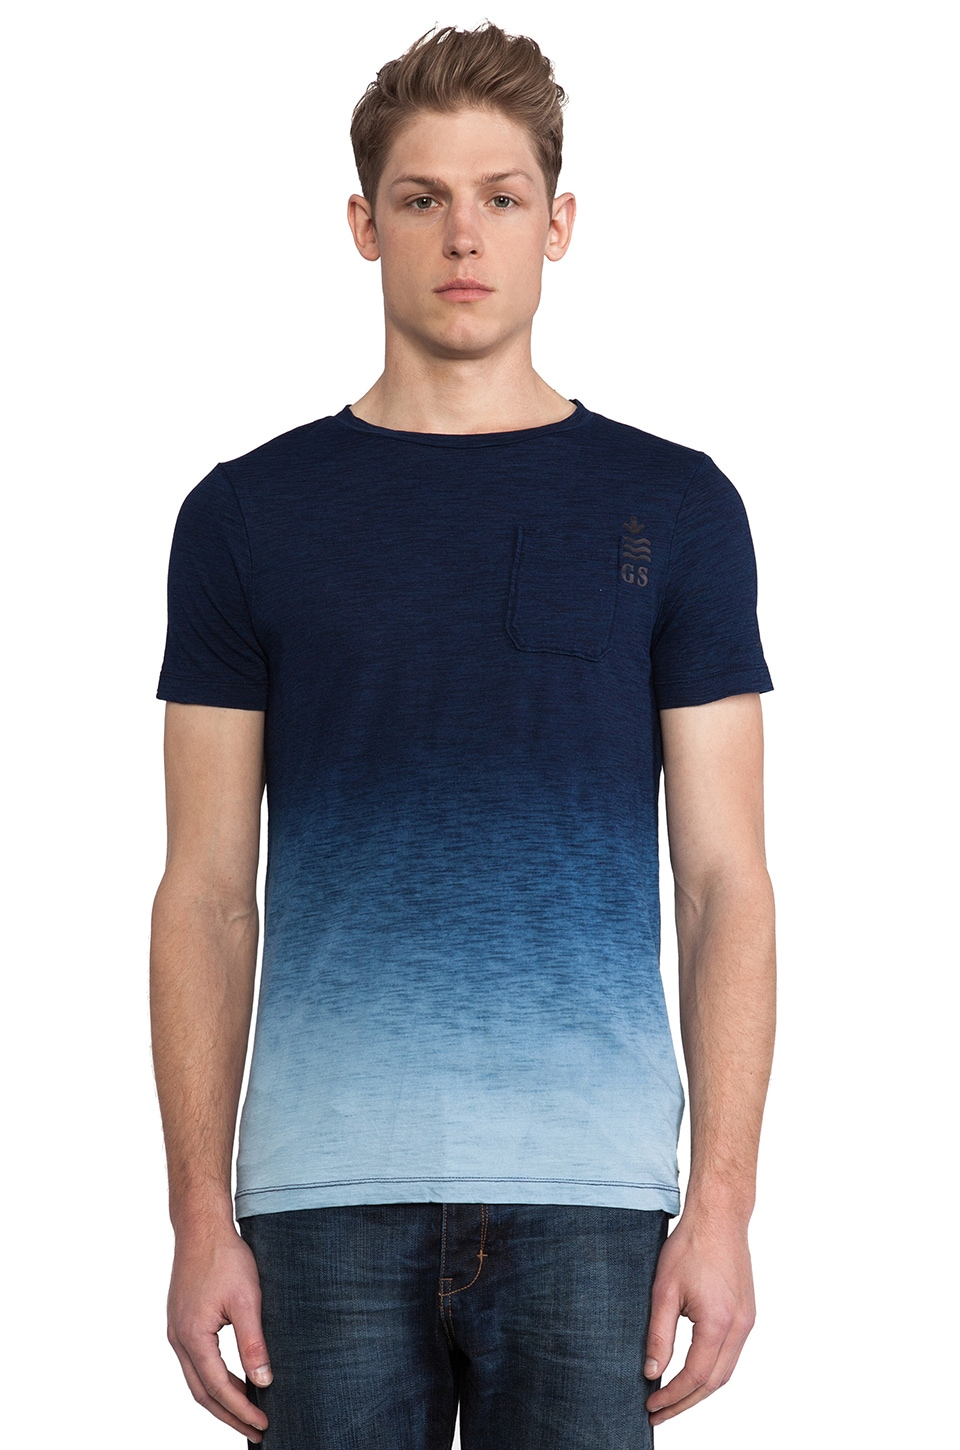 G-Star Galley Indigo Dipped T-Shirt in Indigo